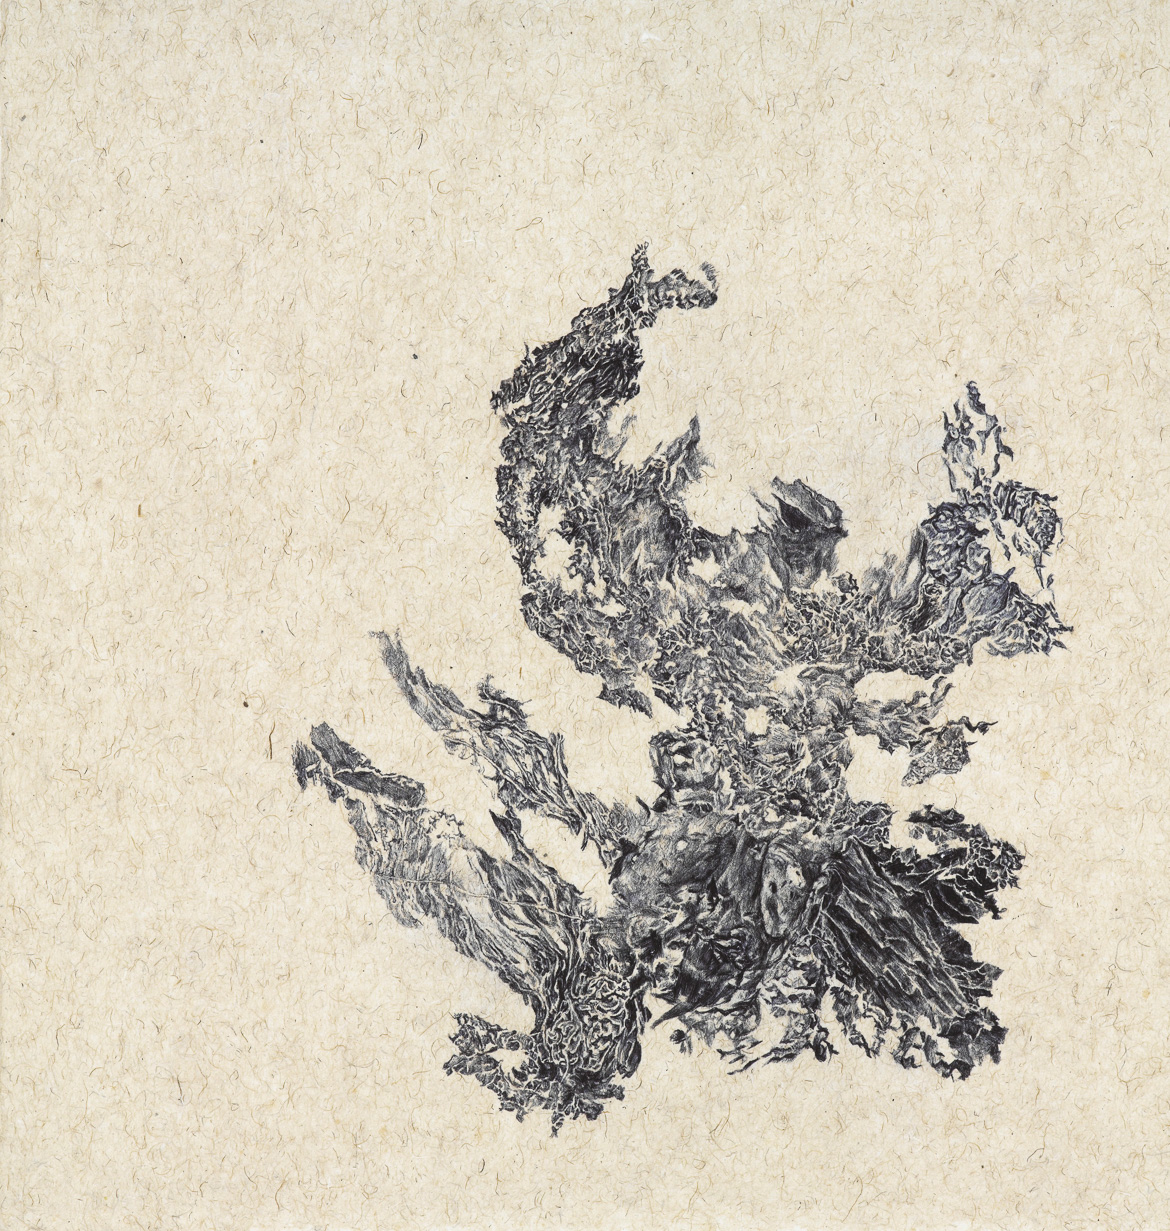 a moment of truth 14, ball pen on paper, 14 inches (width) x 14 inches (height), 2013